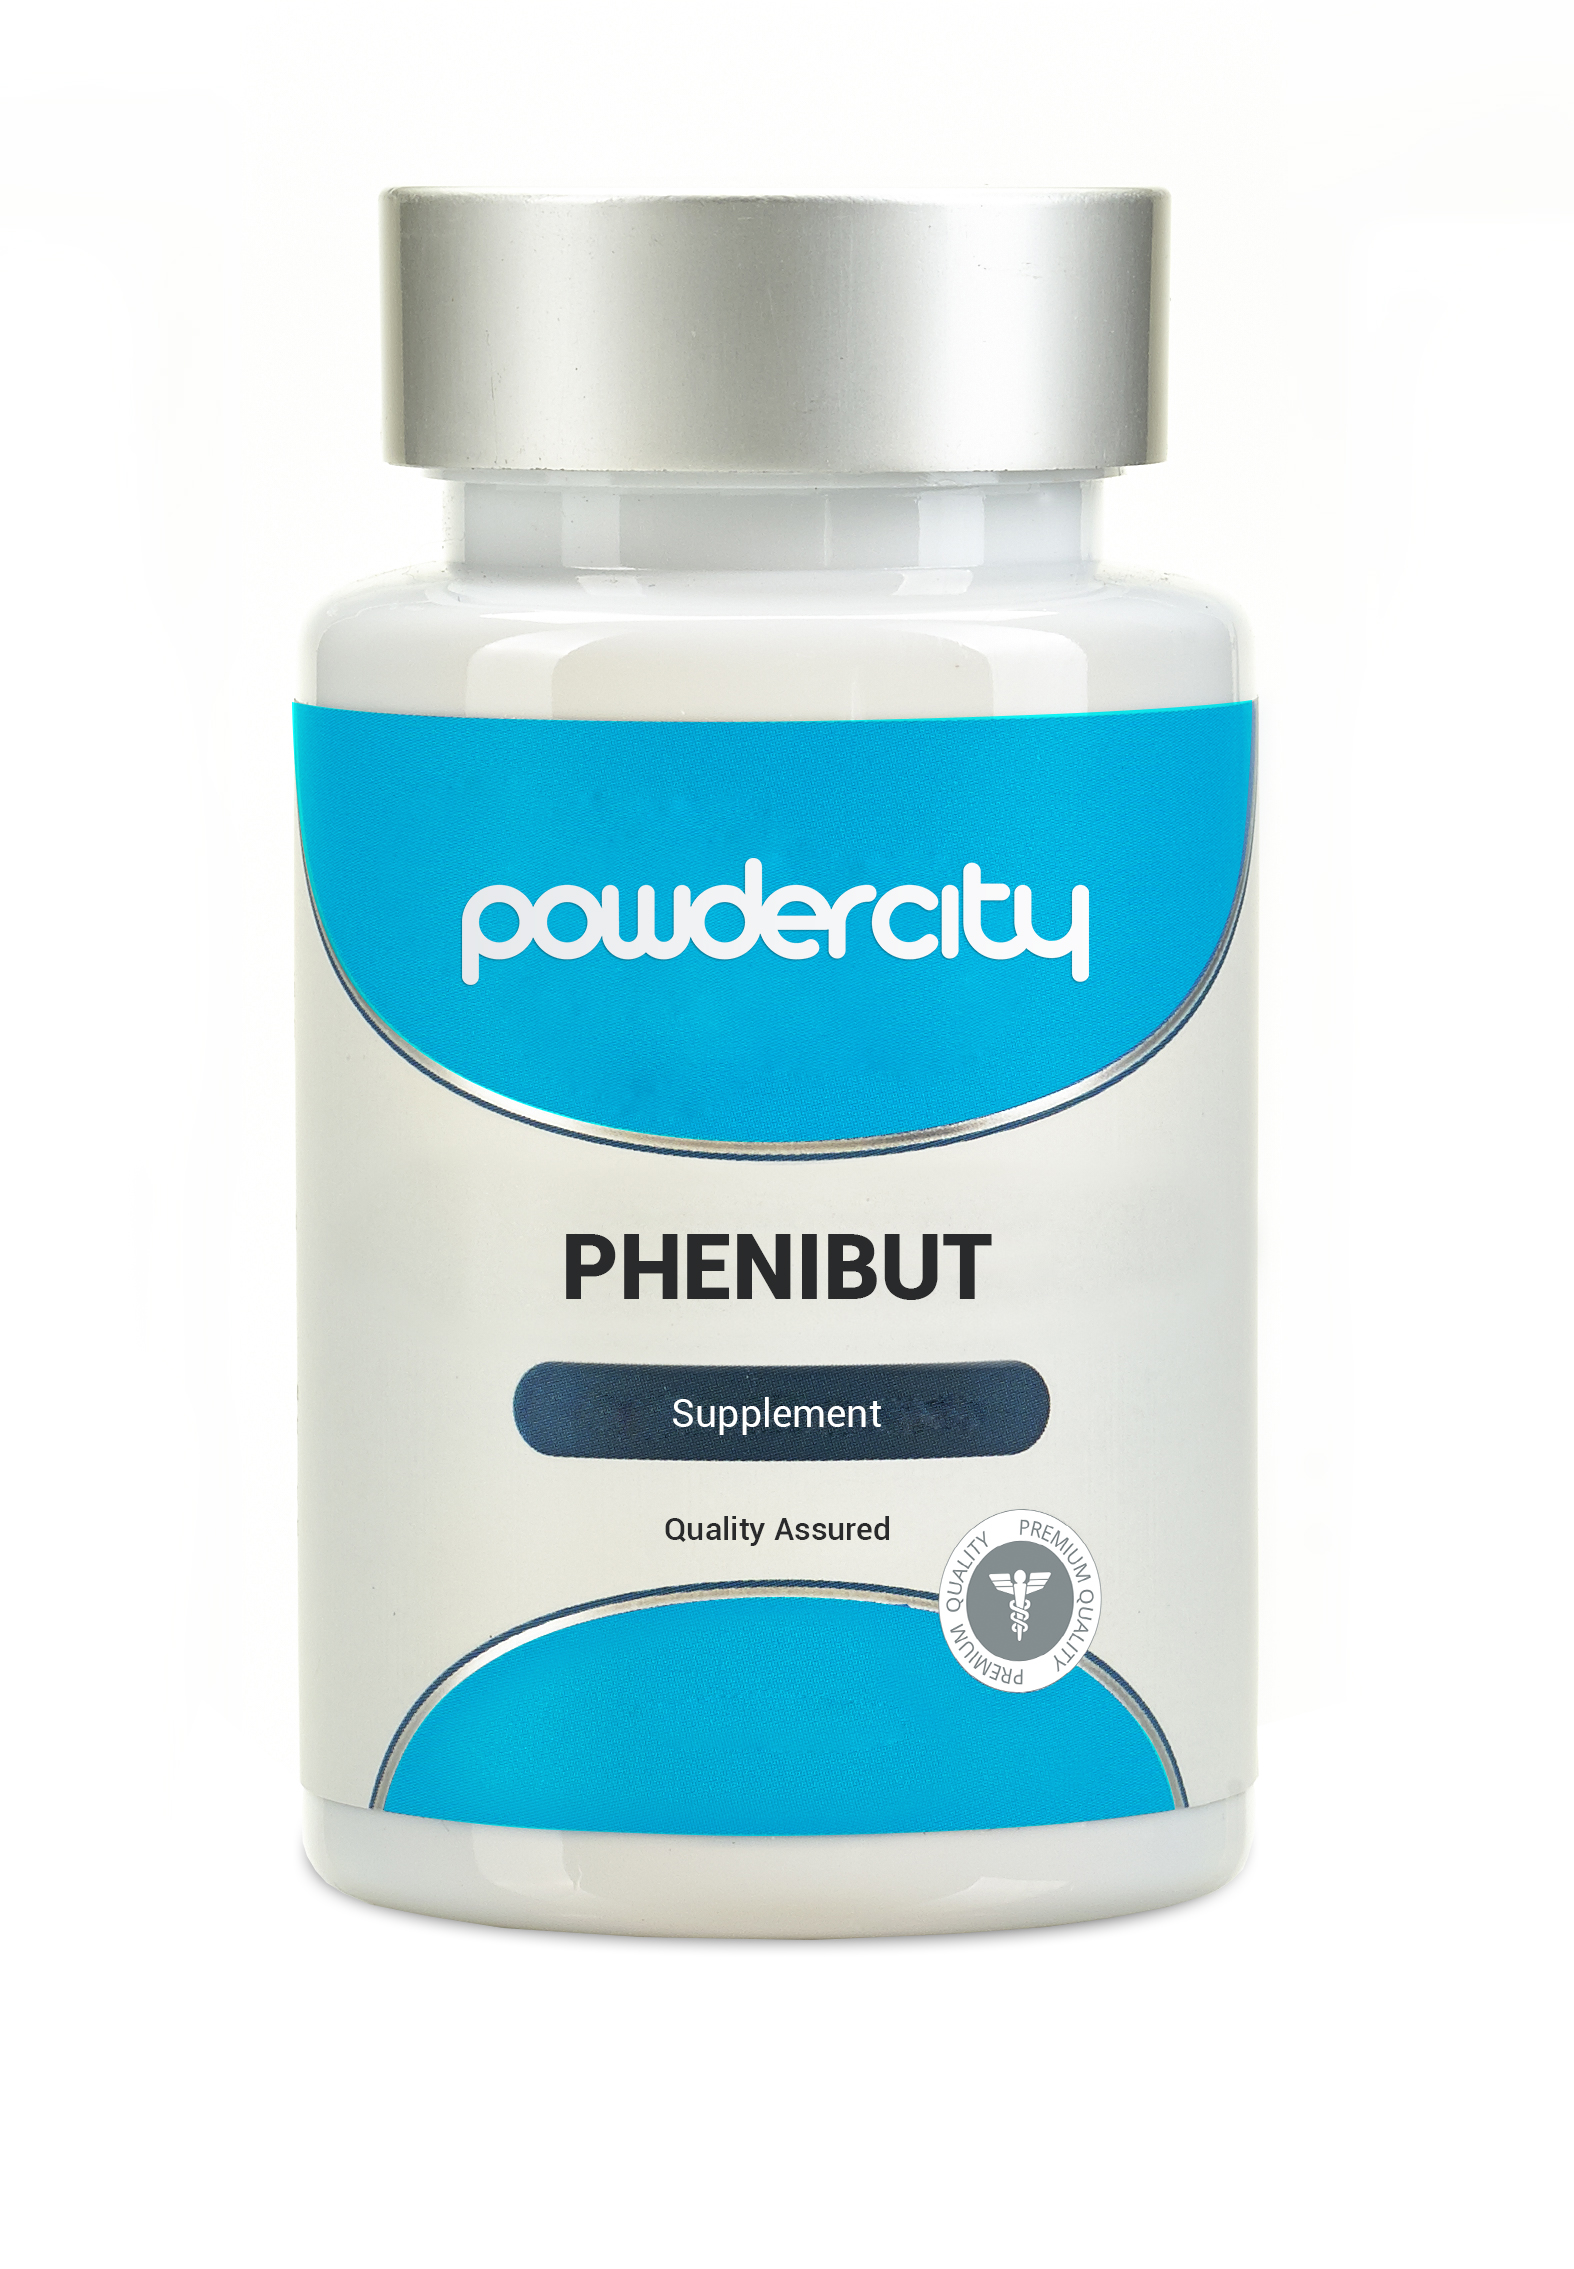 Buy Phenibut Online | Dosage, Reports, Side Effects & Studies